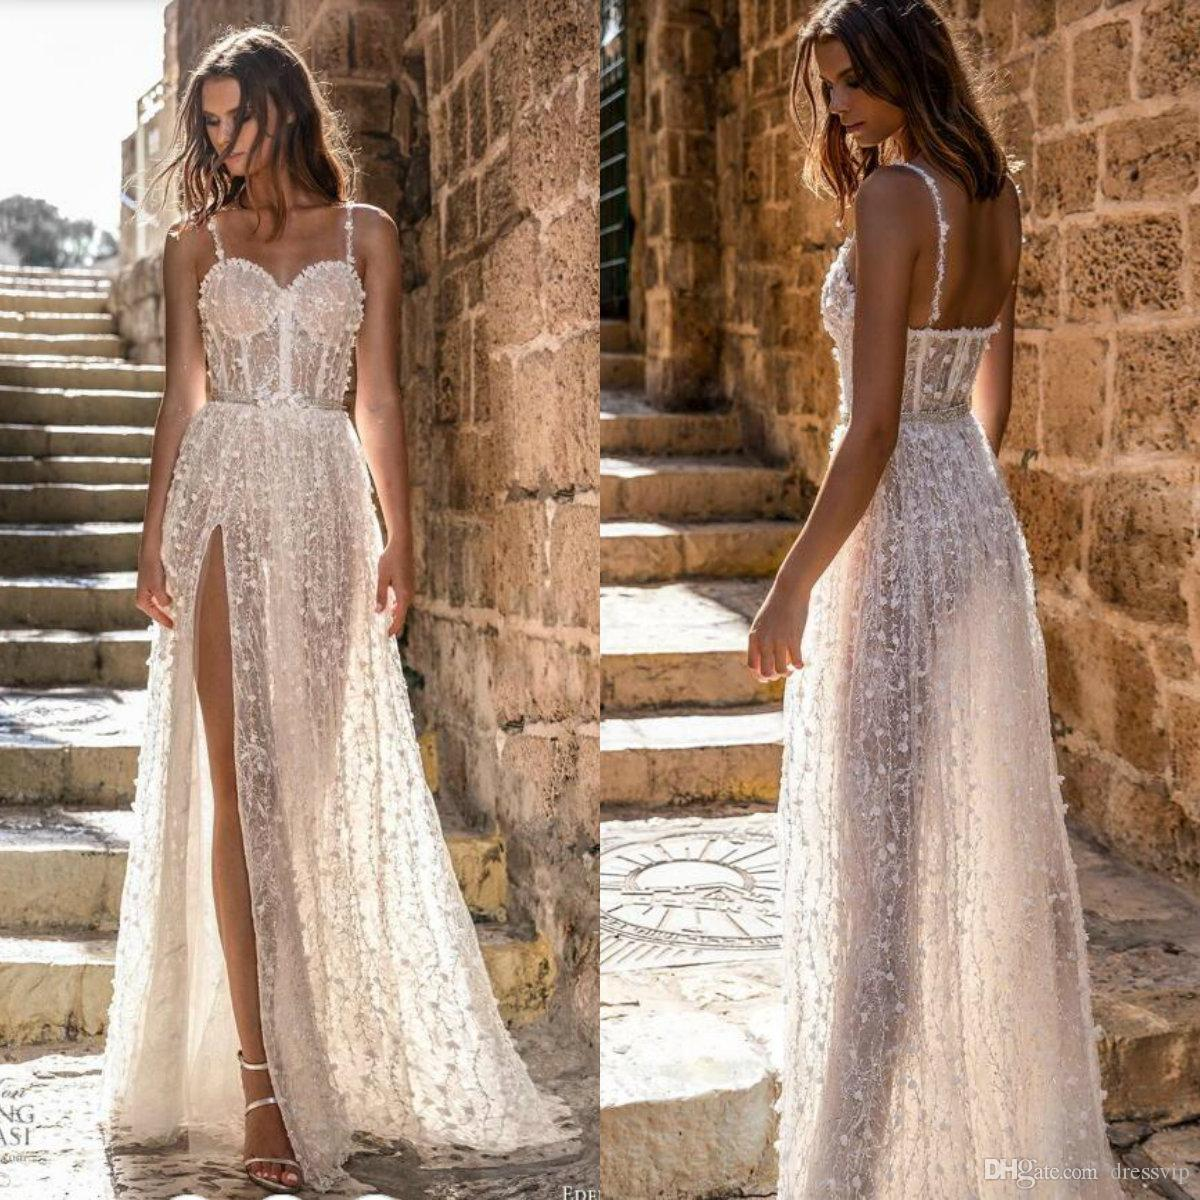 2019 A Line Beach Wedding Dress Lace 3D Floral Appliques Side Split Spaghetti Floor Length Country Wedding Dress Illusion Bridal Gowns